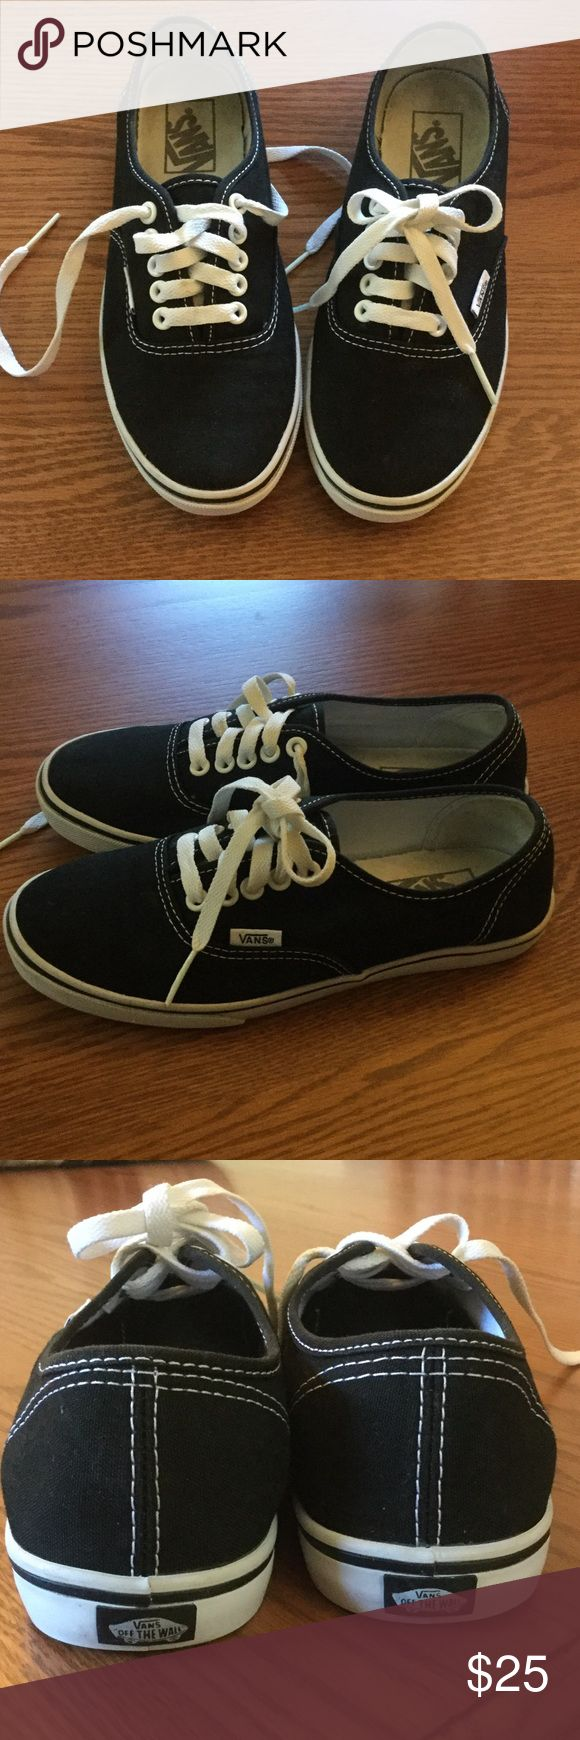 Black Vans sneakers Black Vans shoes!  Women's size 6.5, men's size 5.  They look brand new except for some dirty spots at the inside heels.  These have just been washed. Vans Shoes Sneakers